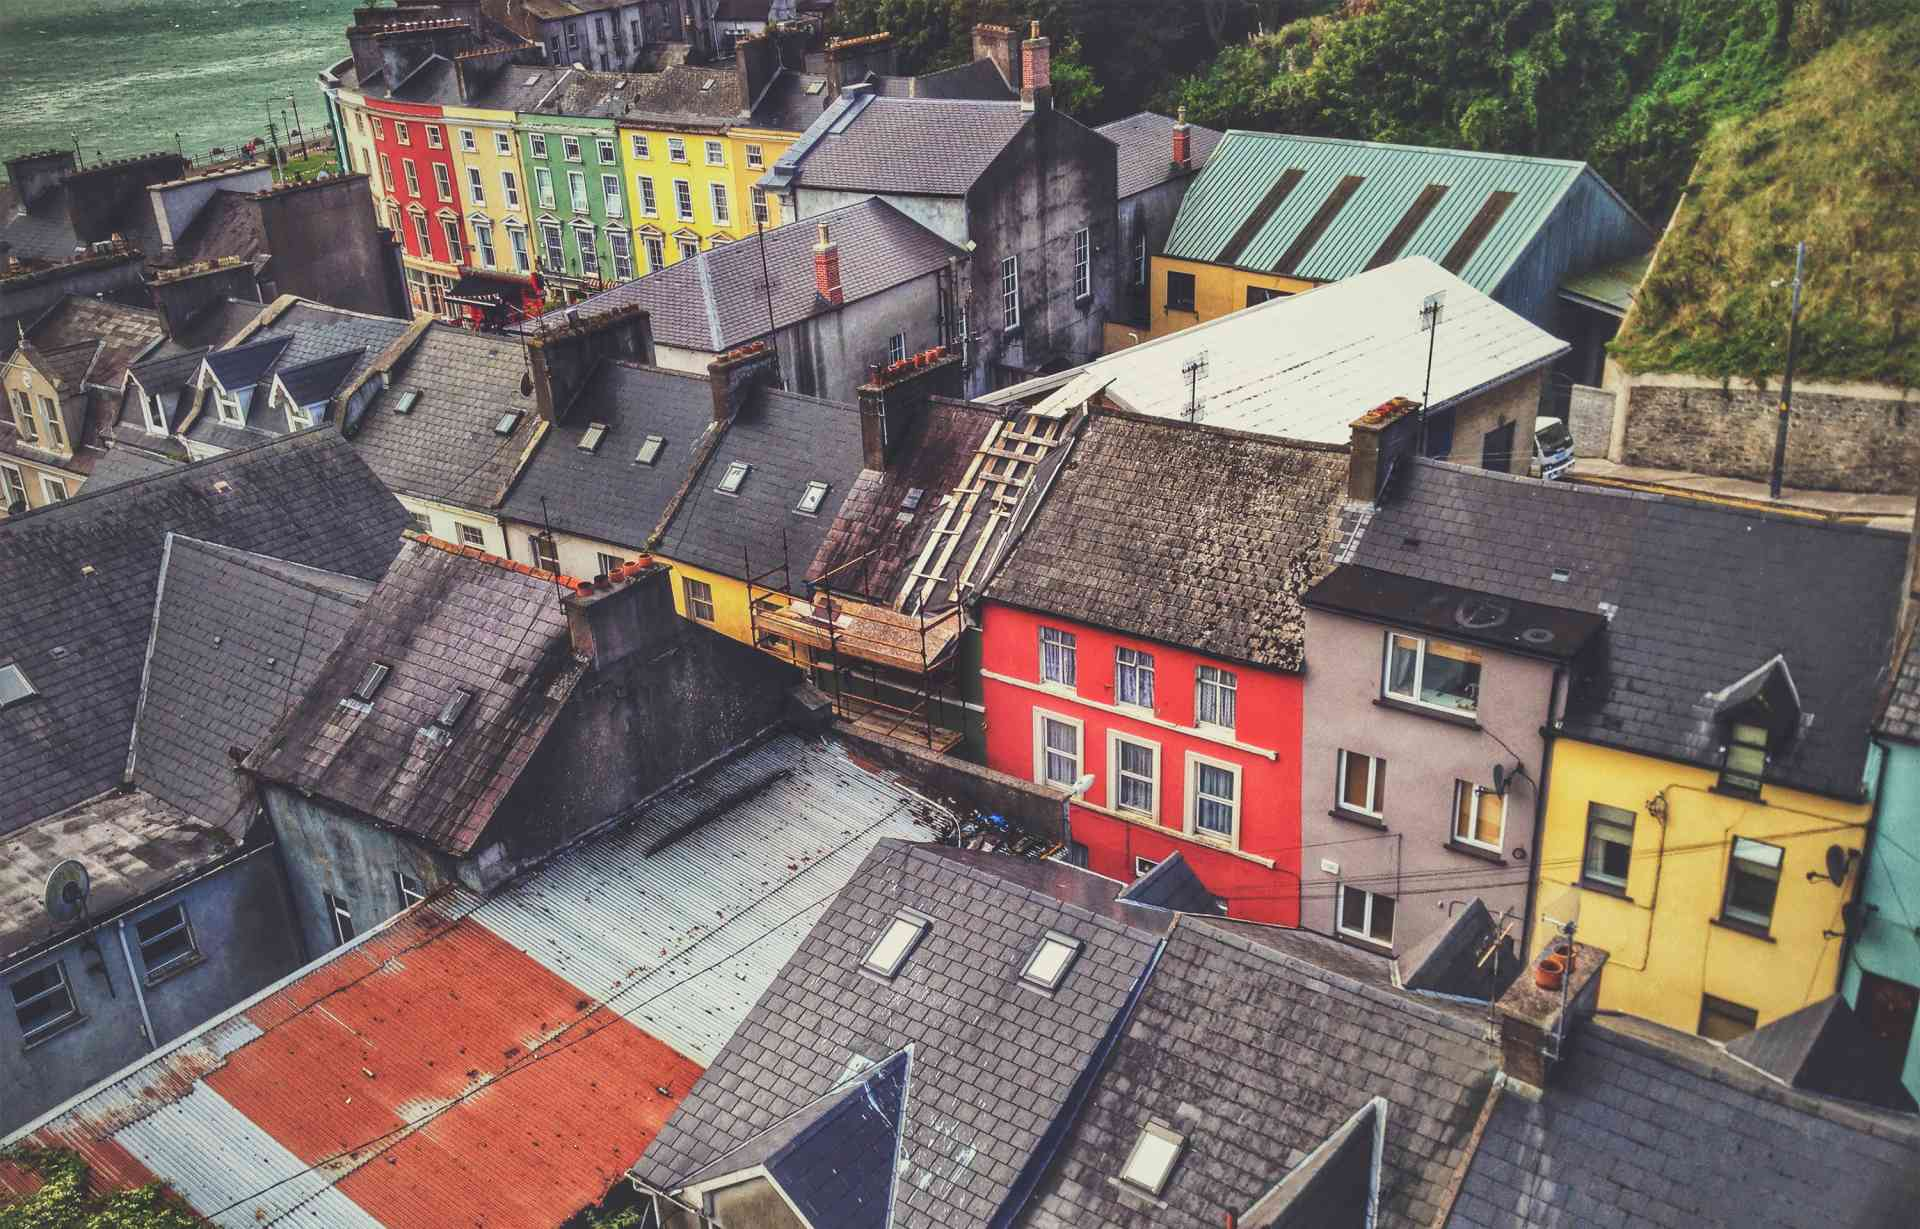 The colourful village of Cobh, Ireland